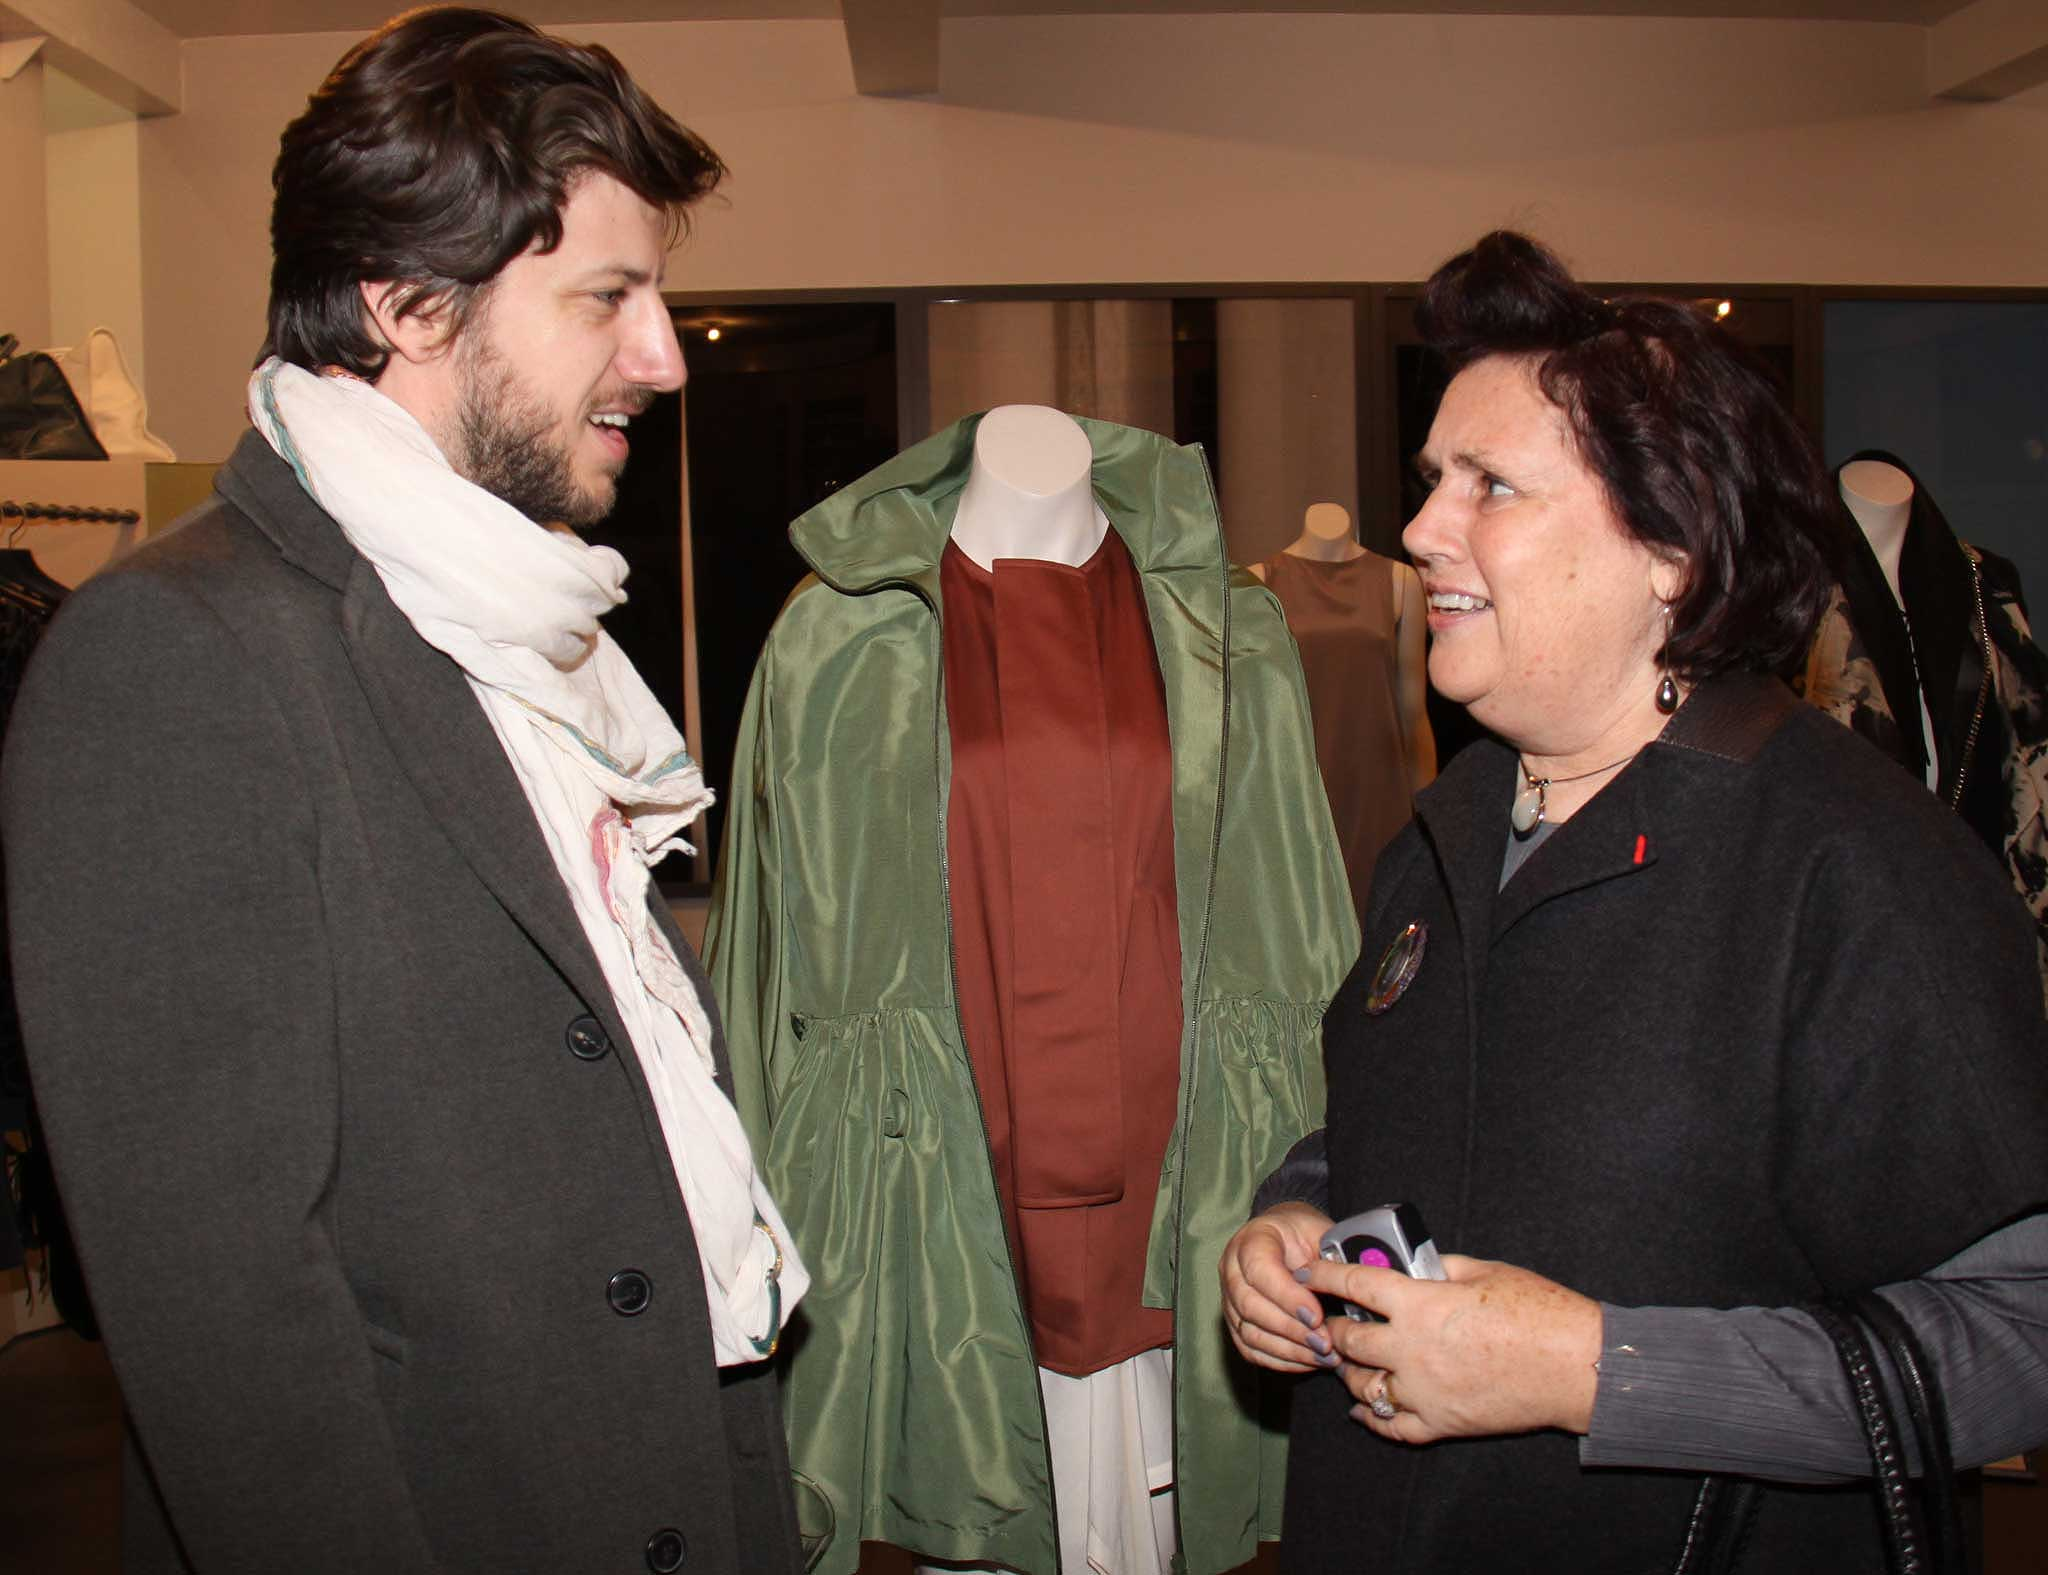 Suzy Menkes (right) meet Designer Michael Sontag in Berlin.